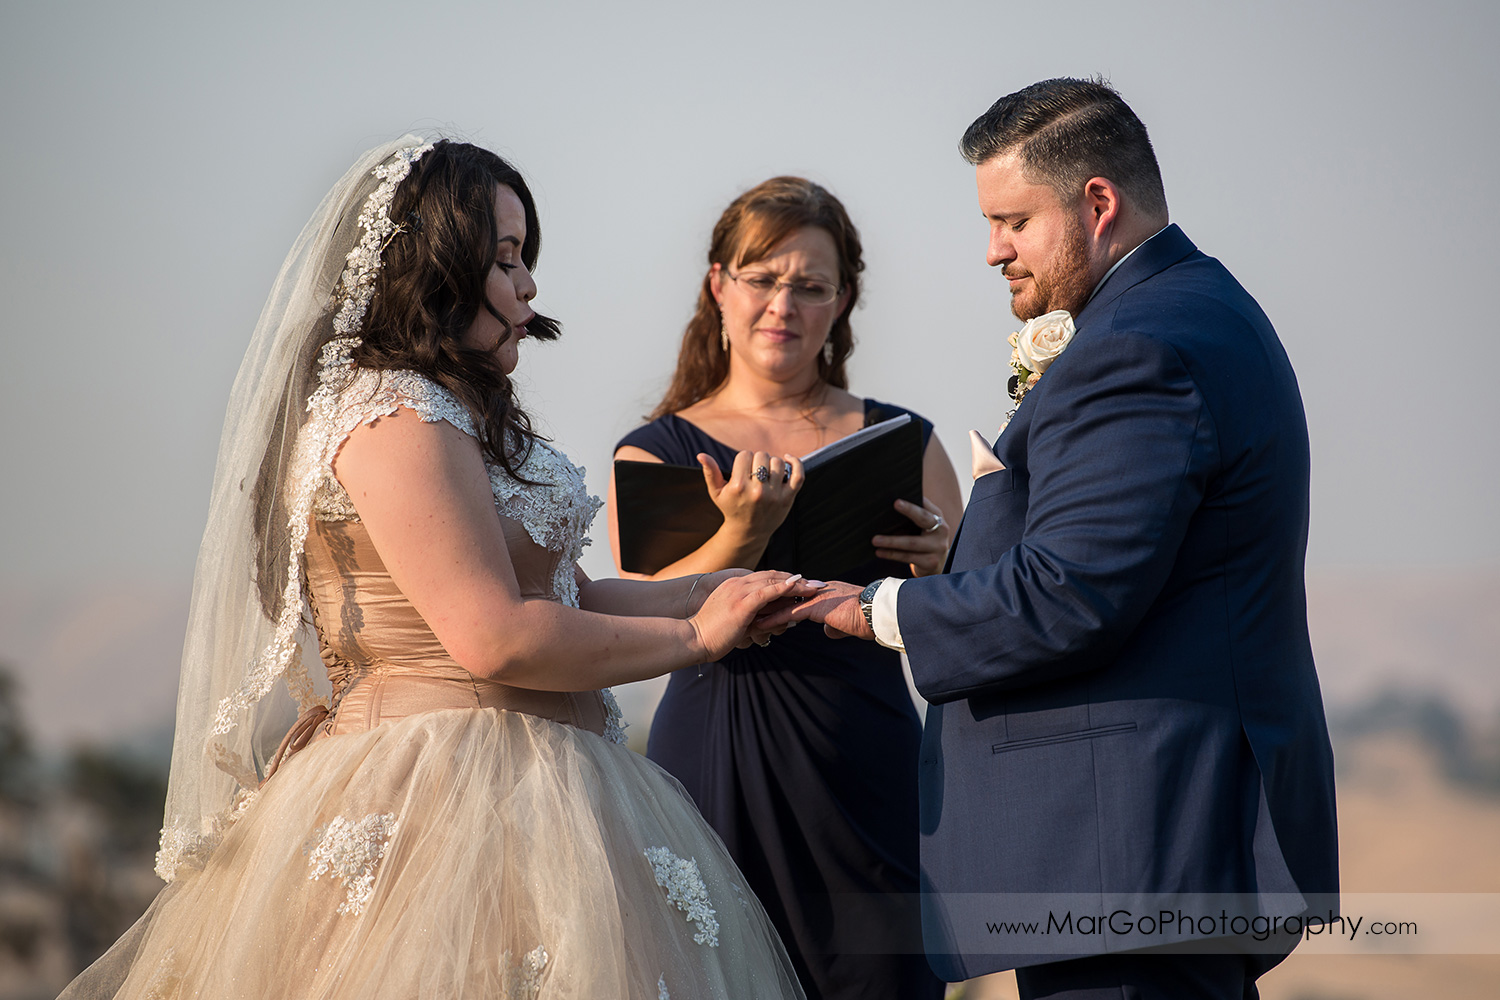 bride putting ring on groom's finger during wedding ceremony at Taber Ranch Vineyards